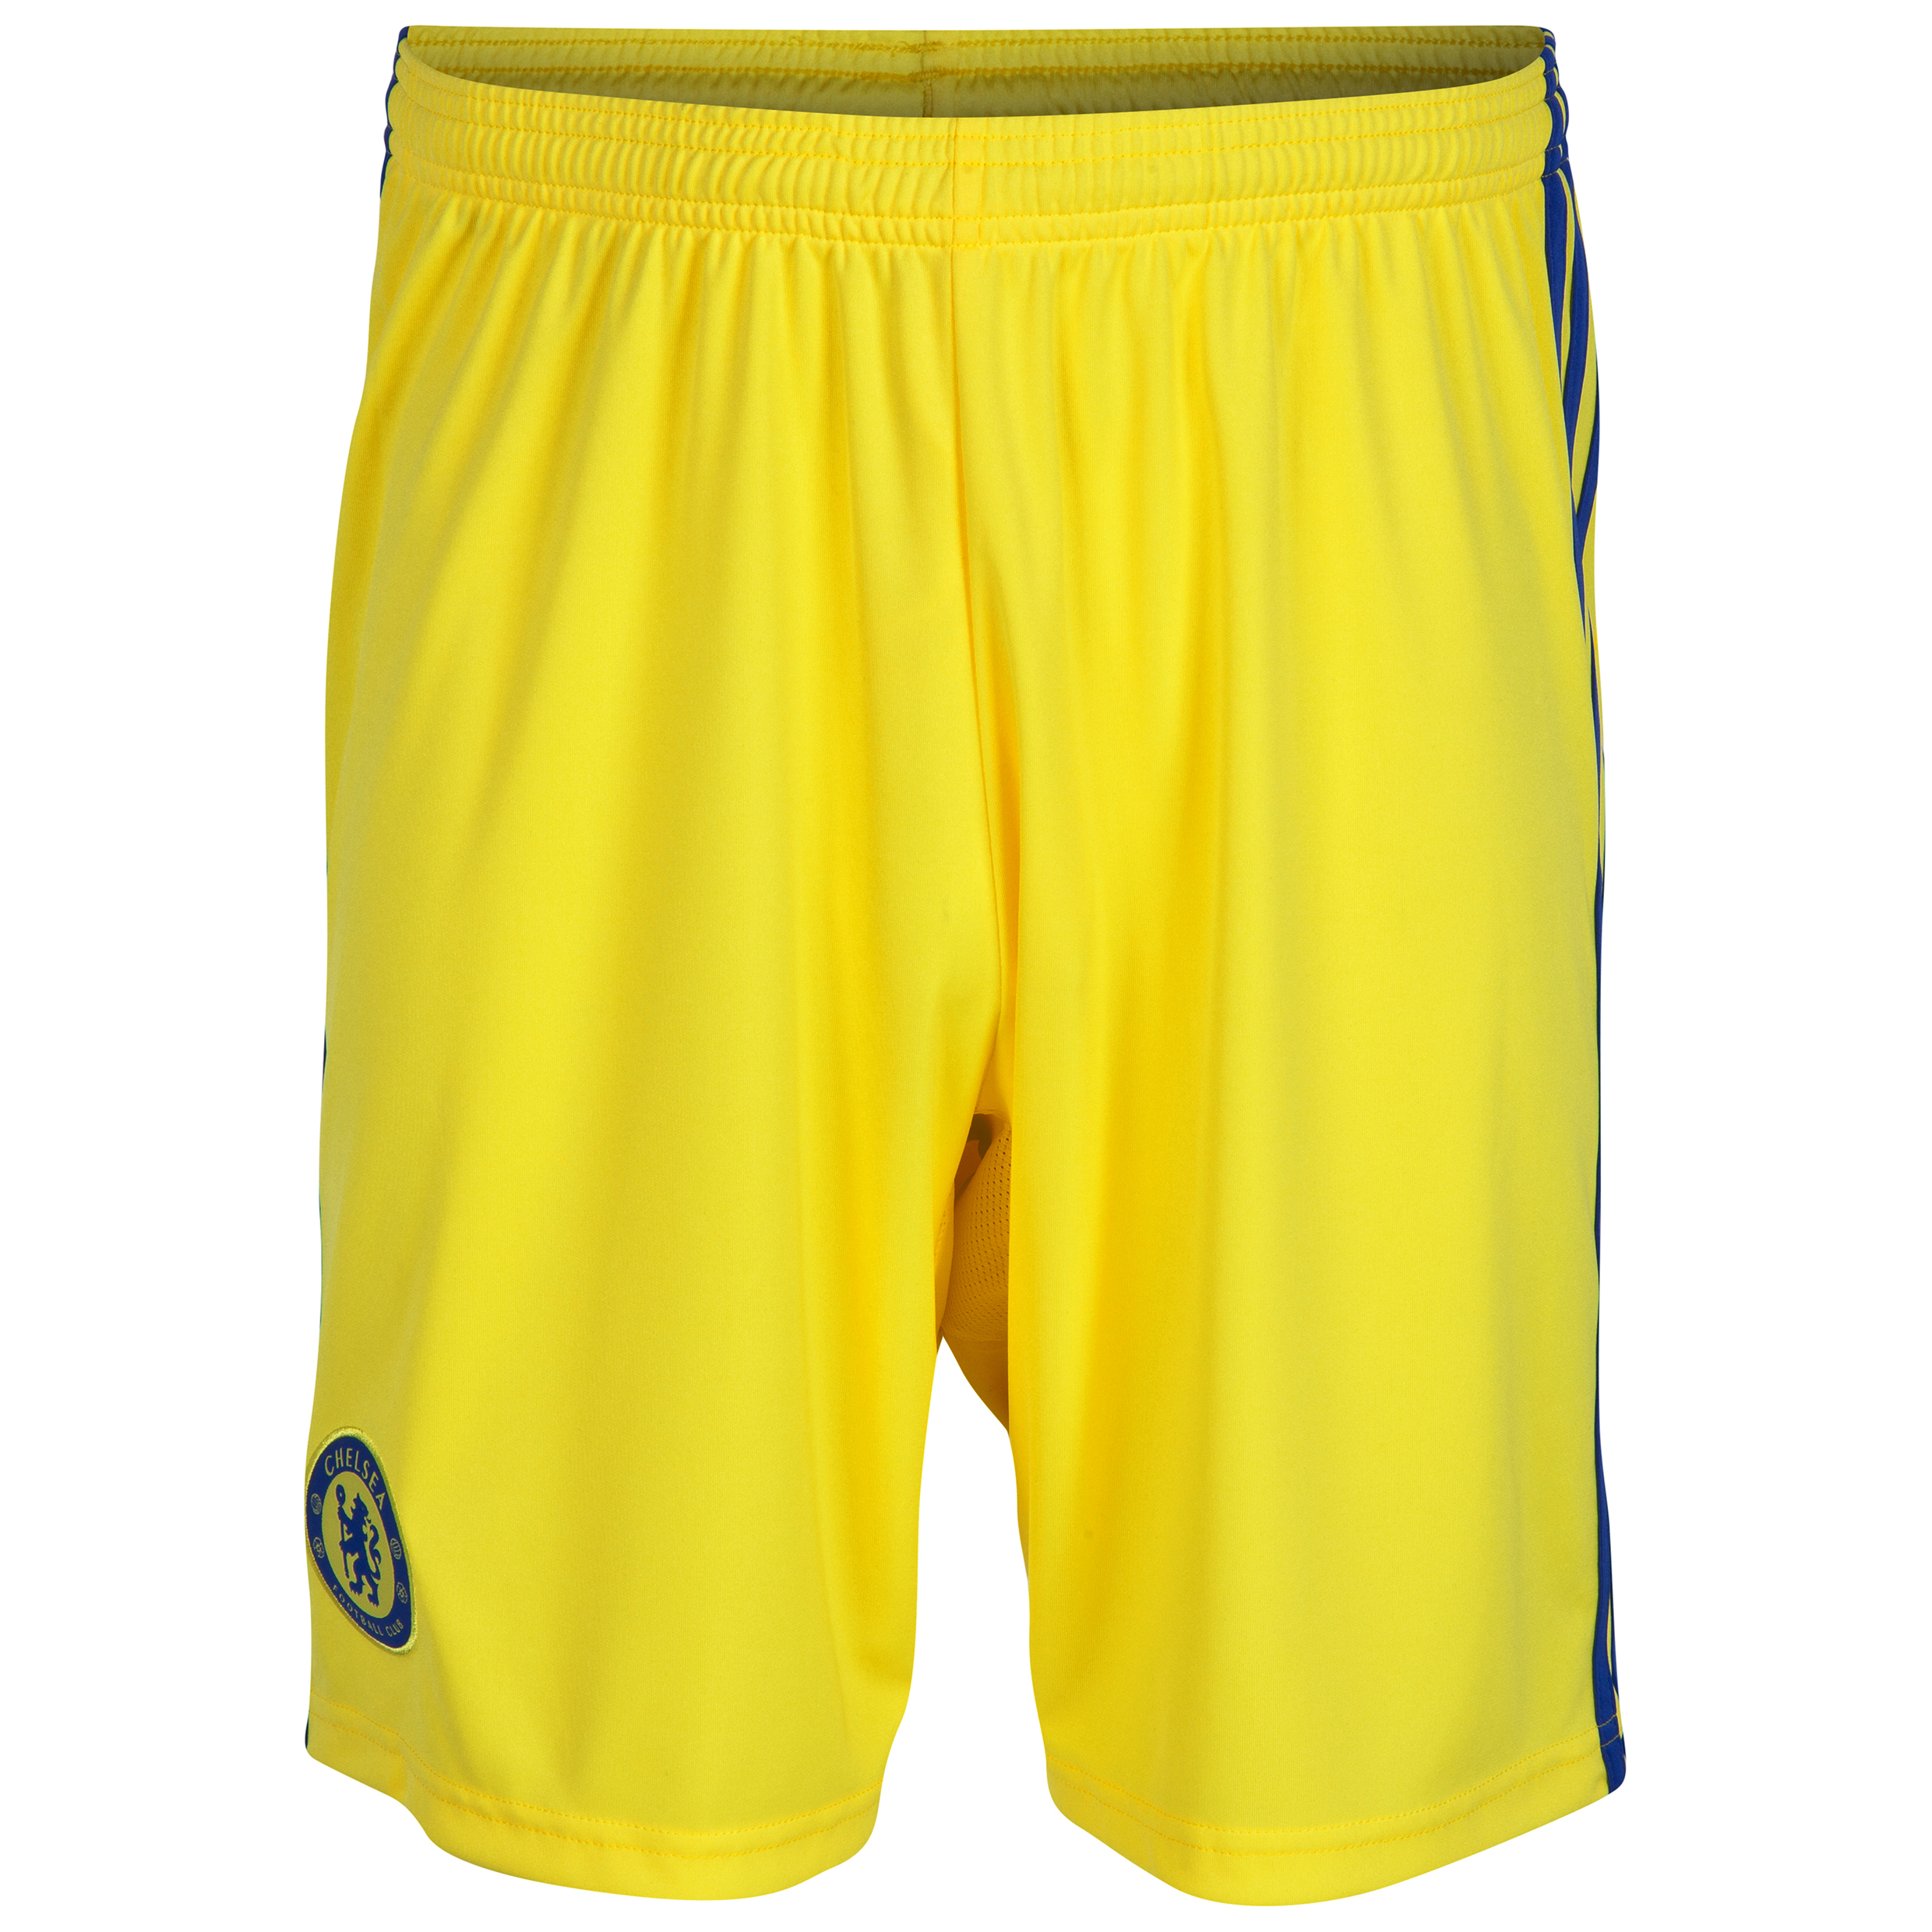 Chelsea Away Shorts 2014/15 - Kids Yellow   Let your child support their favourite team with pride and style with these yellow 2014/15 Chelsea away shorts which are inspired by the iconic yellow away kits from the club's past. With the team crest on the leg and blue stripes for an athletic style, these adidas shorts will look great on the pitch.   Fans of all ages will have great memories of Chelsea in a yellow away strip, from its first outings with the likes of Peter Osgood in the 1960s and 1970s, through to Frank Lampard's fantastic performance in the FA Cup 2009 final. If your child wants some stylish and comfortable shorts they can wear to show pride for The Blues, these Chelsea away shorts are the ideal choice.   Benefits of these Chelsea Away Shorts •adiZero lightweight technology which promises lightweight comfort •Iconic yellow colour •Club badge on the leg for team pride and style •Contrast blue stripes for an athletic style